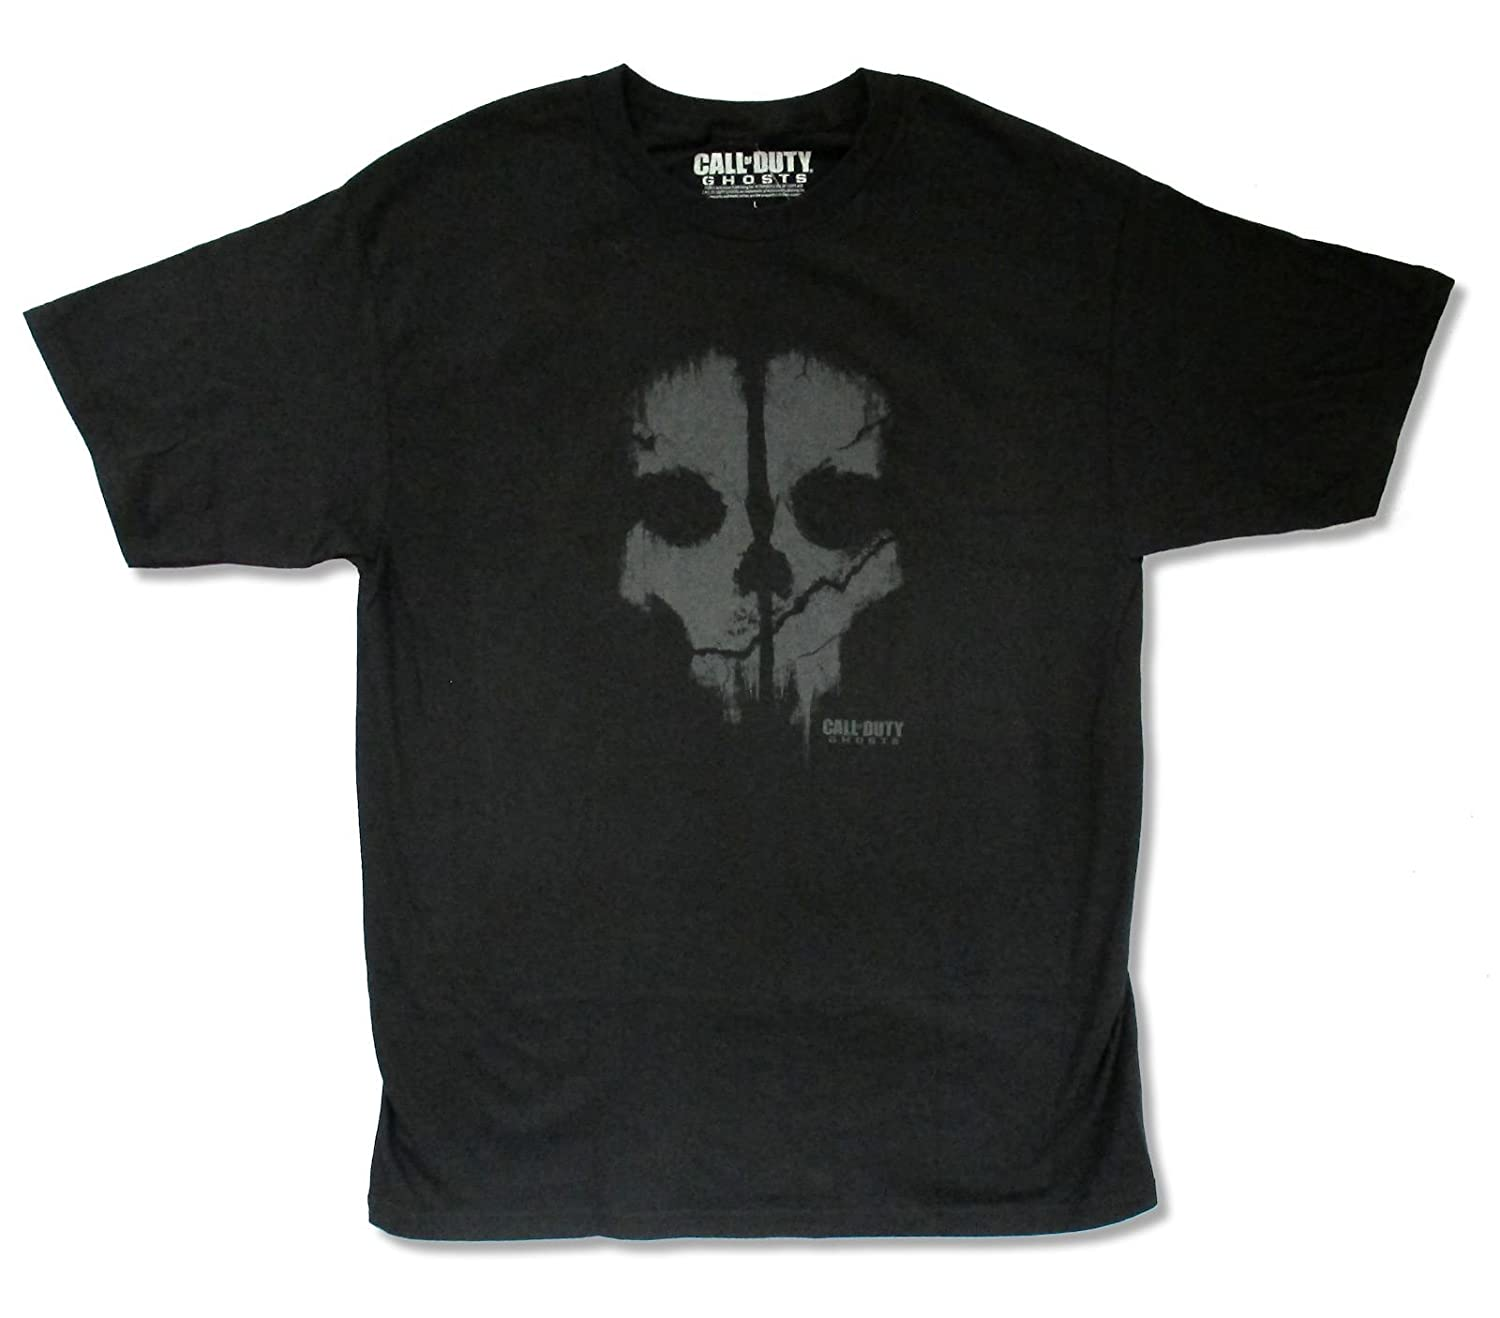 Call of Duty Skull Black T Shirt